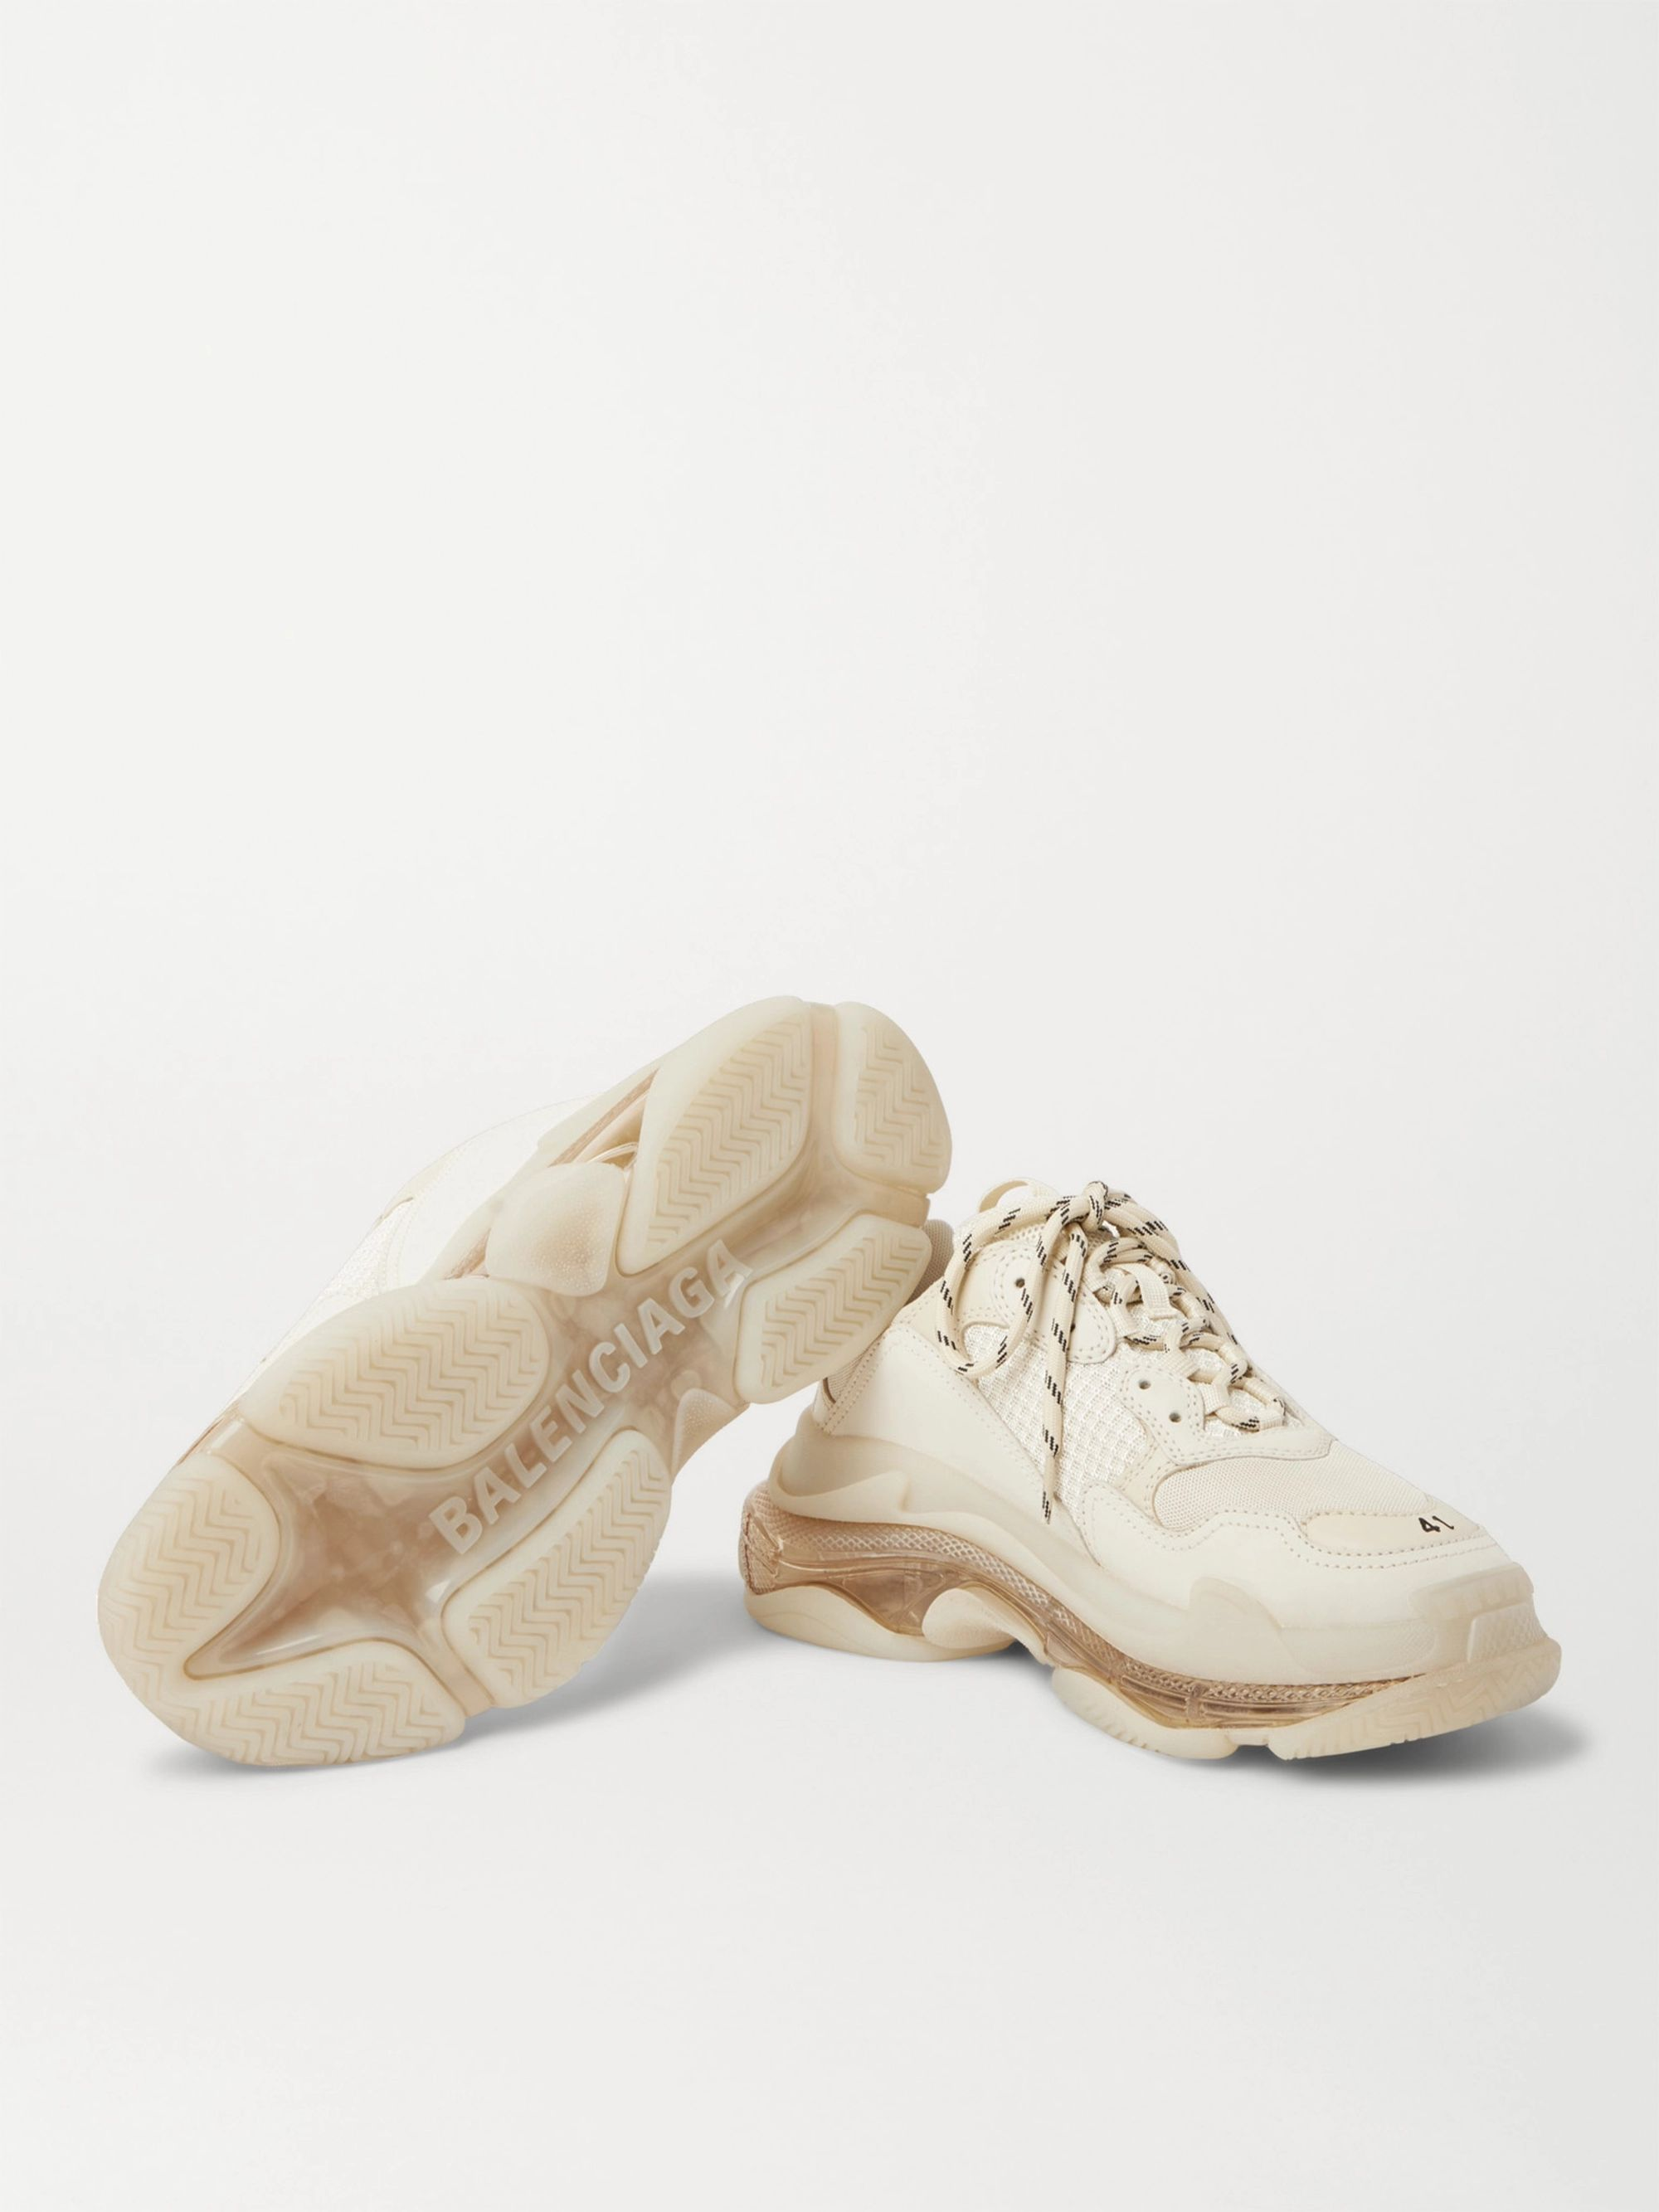 Balenciaga Triple S Clear Sole Mesh, Nubuck and Leather Sneakers